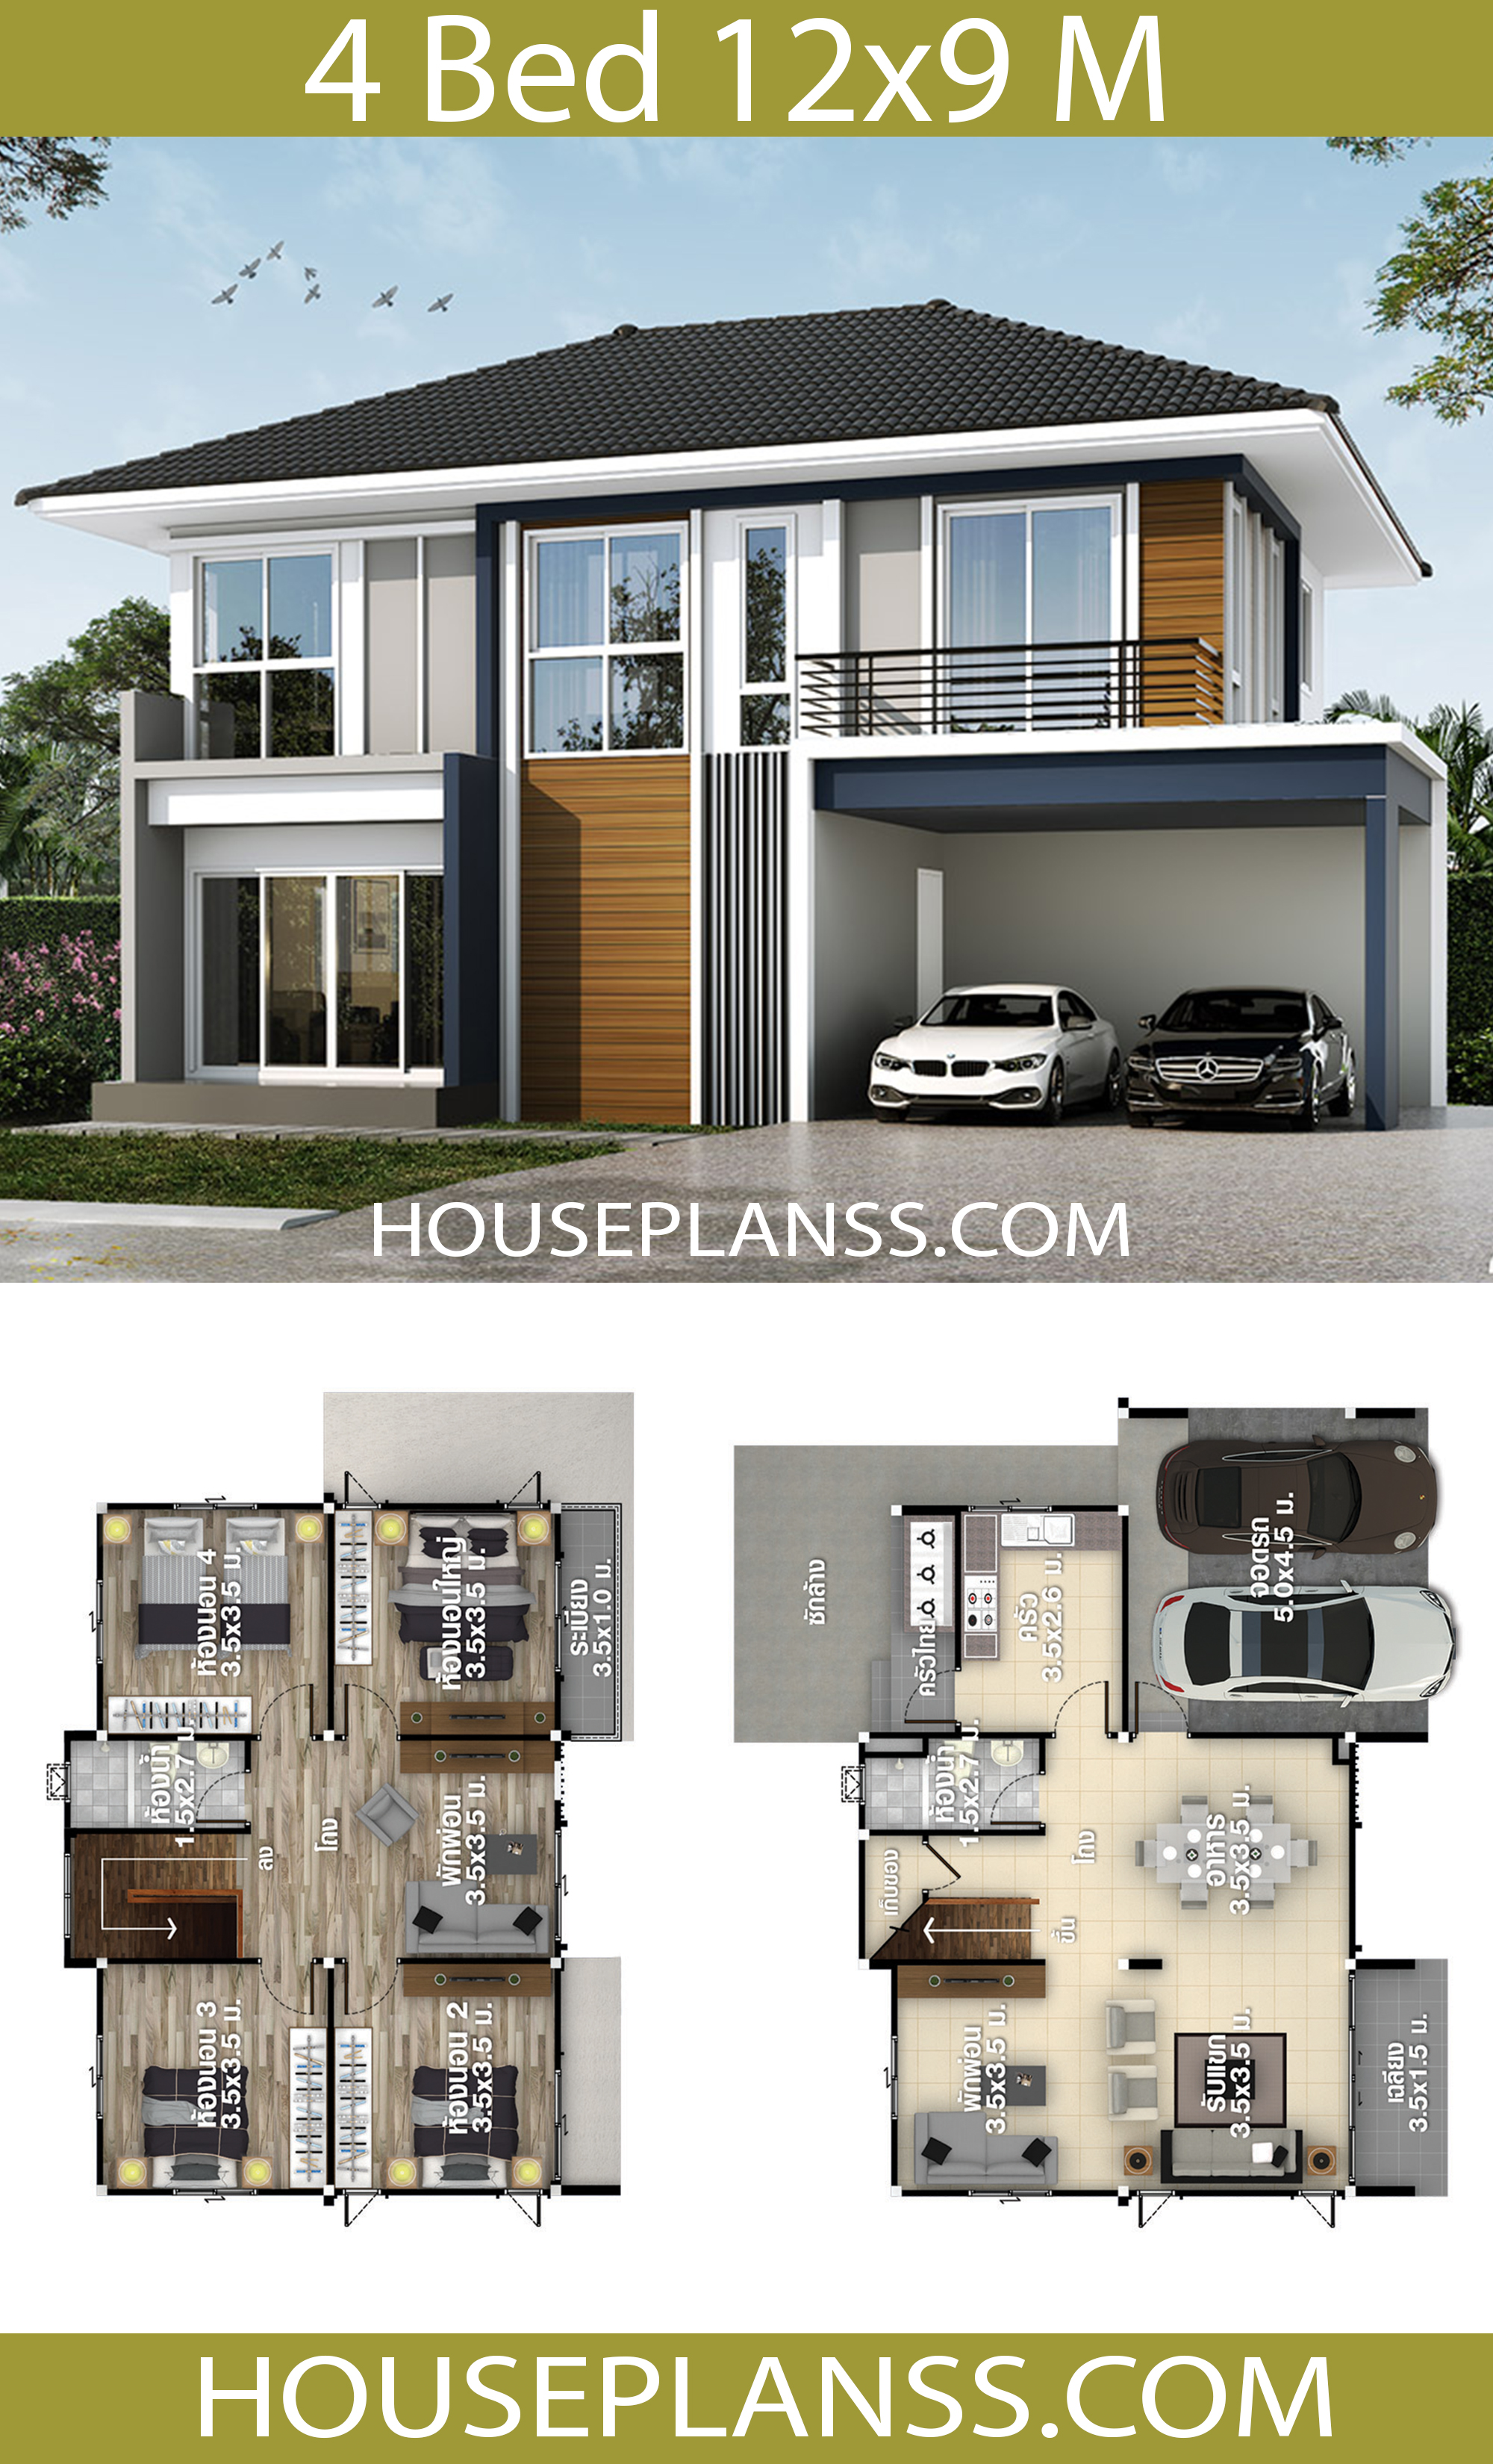 10 X 12 Bedroom Design: House Design Idea 12x9 With 4 Bedrooms